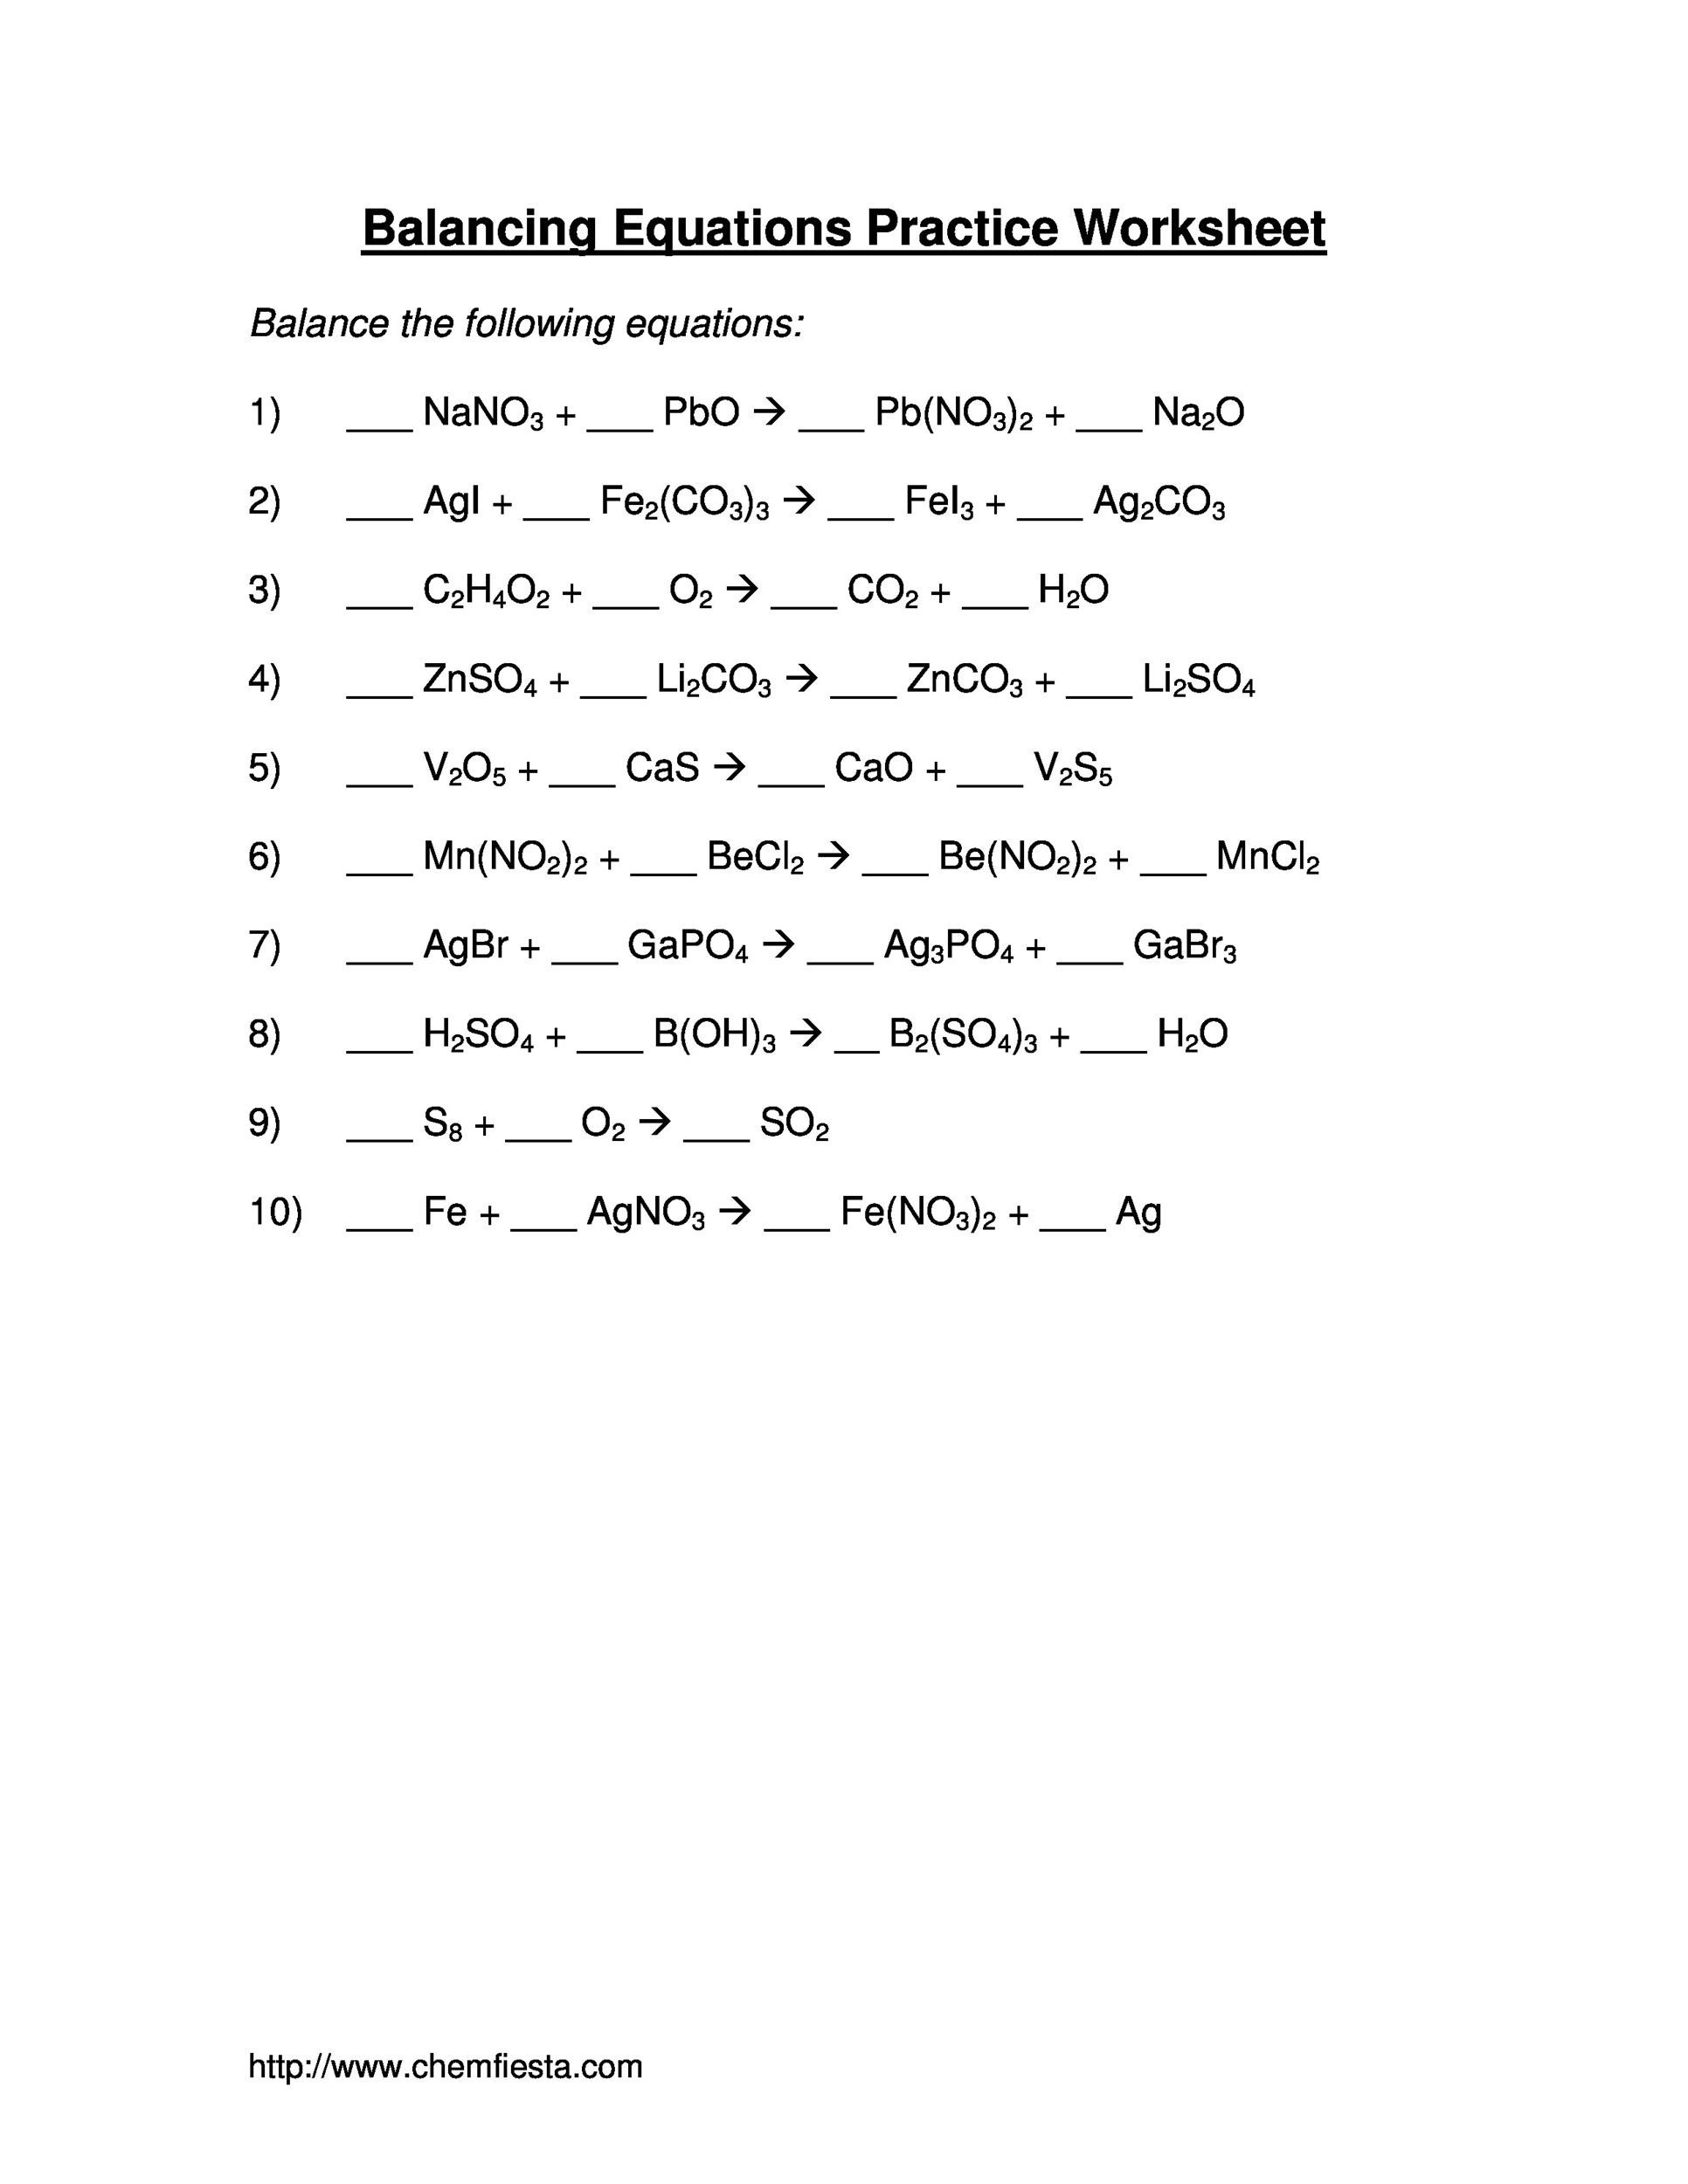 Balancing Chemical Equations Practice Worksheet With Answers Free